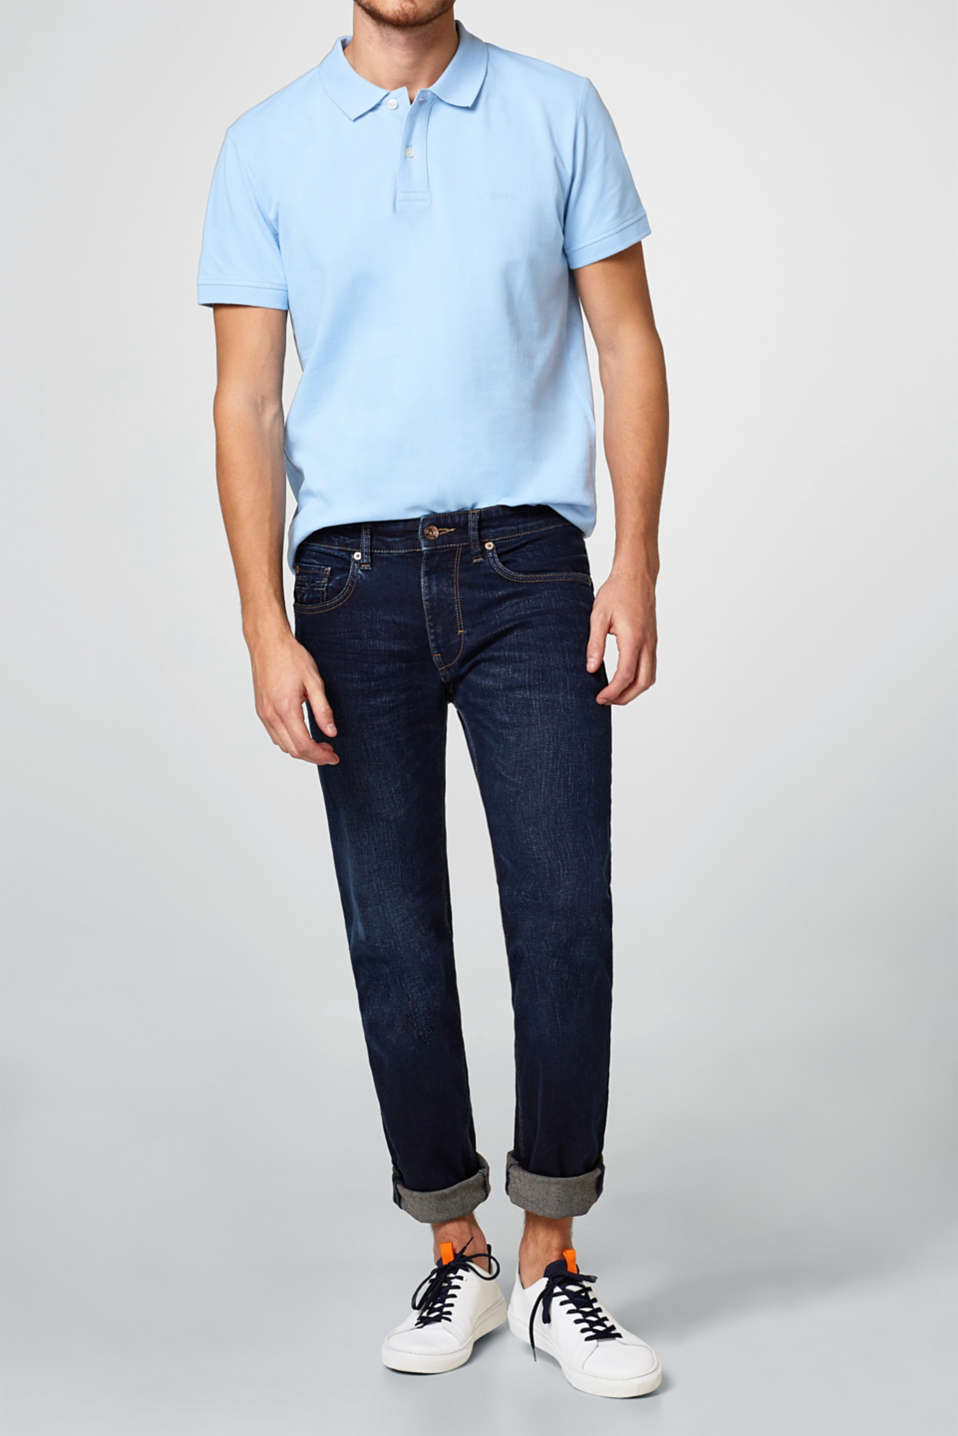 Esprit - Stretch jeans in a light vintage wash